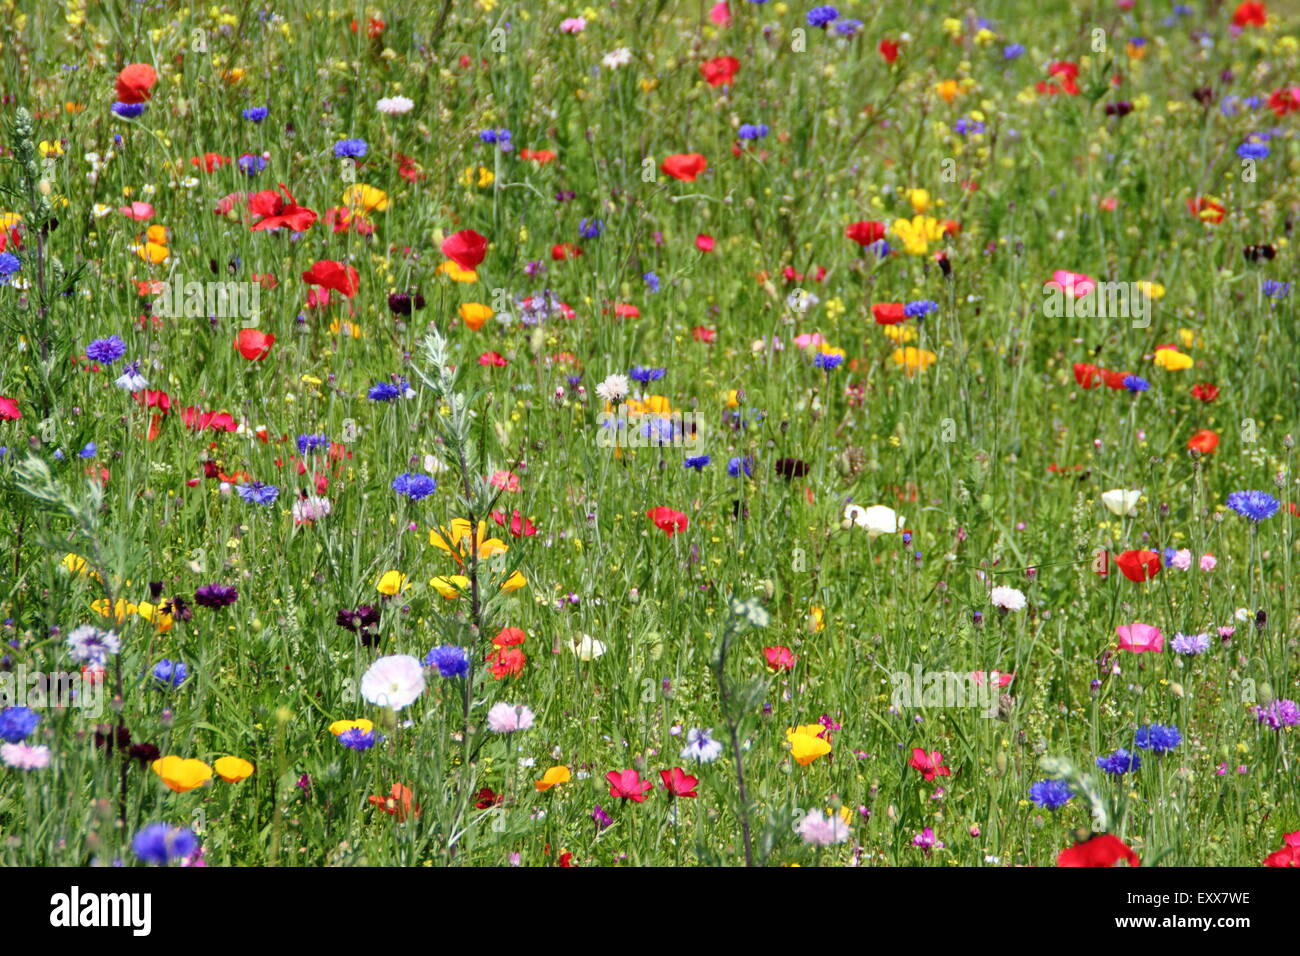 Wildflowers grow t Sheffield Manor Lodge, home to Pictorial Meadows; a movement for impressionist flowers schemes, - Stock Image